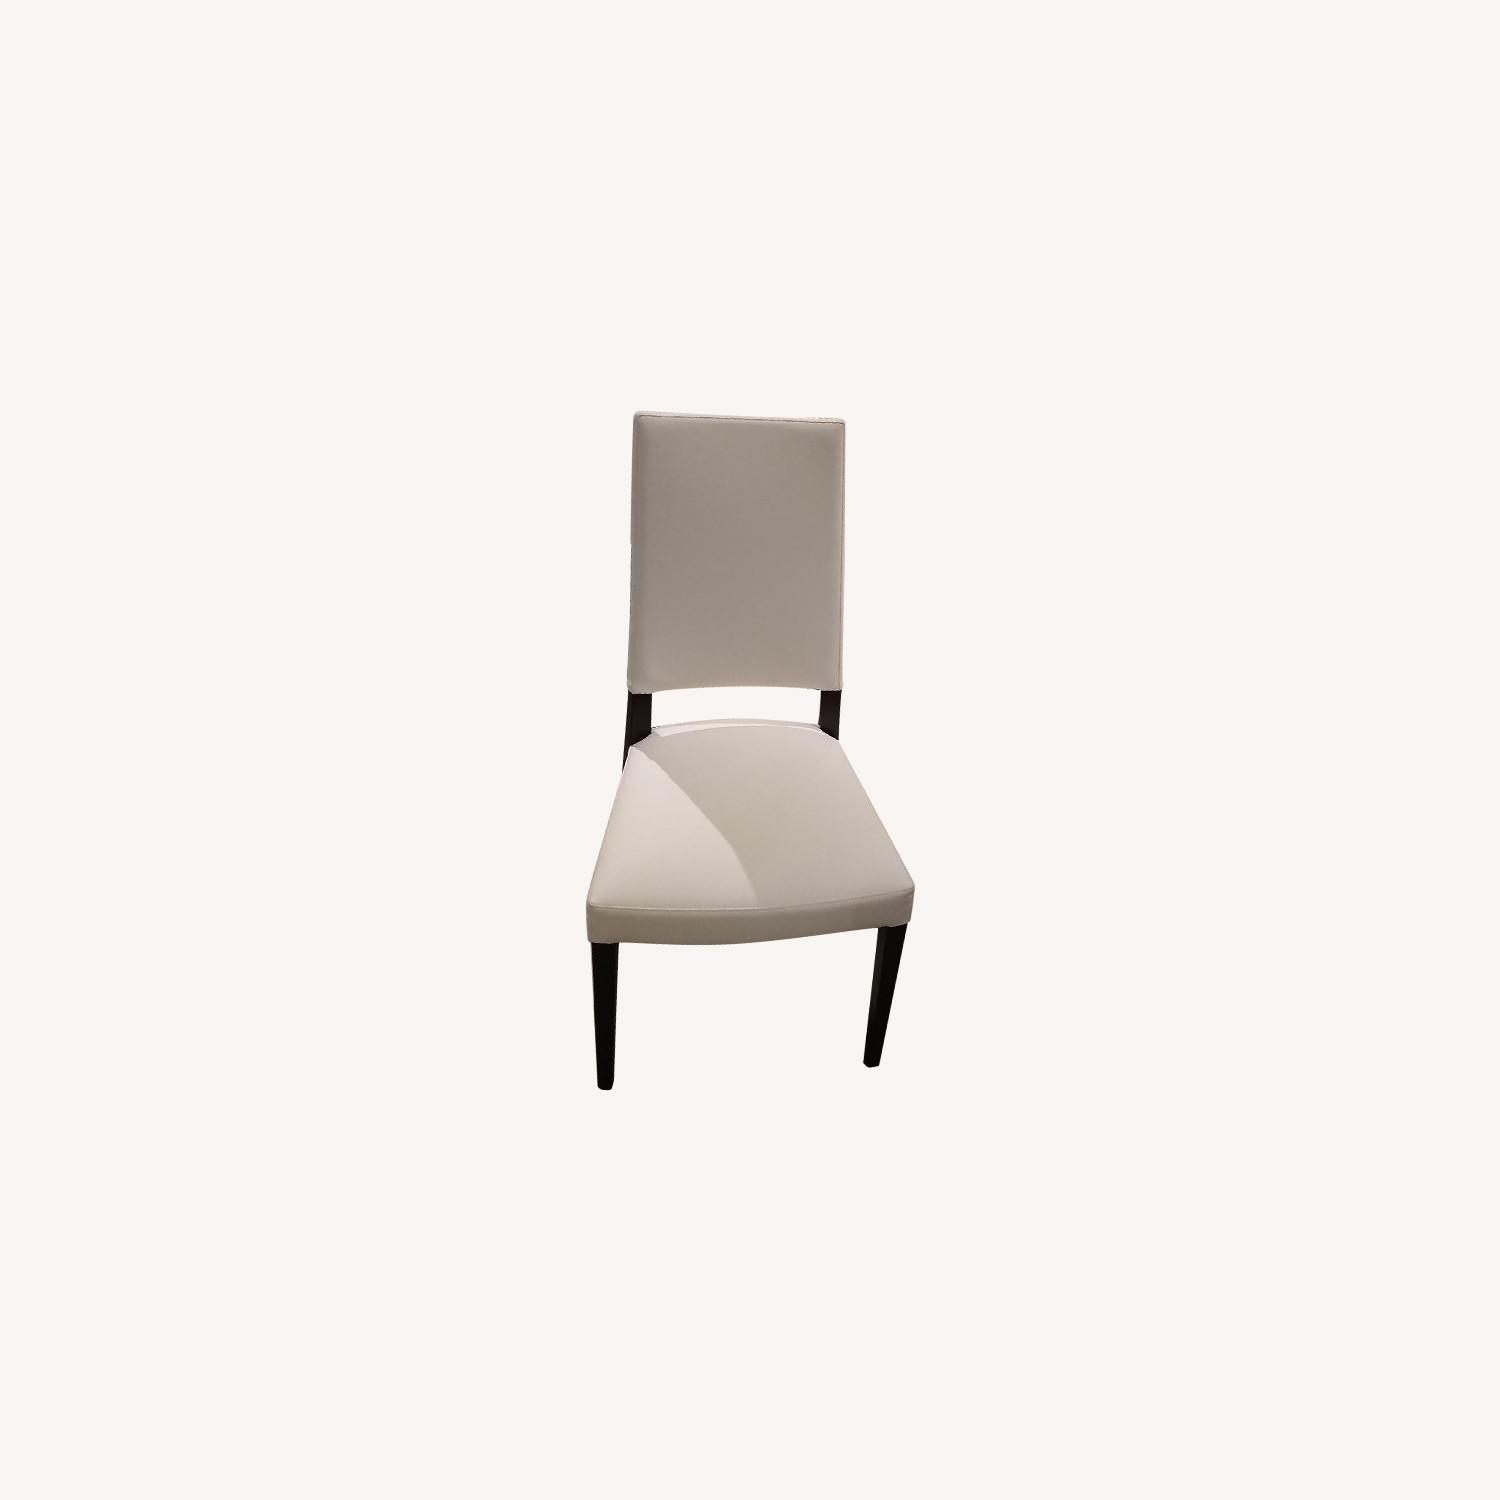 Calligaris Sandy Dining Chairs - image-5